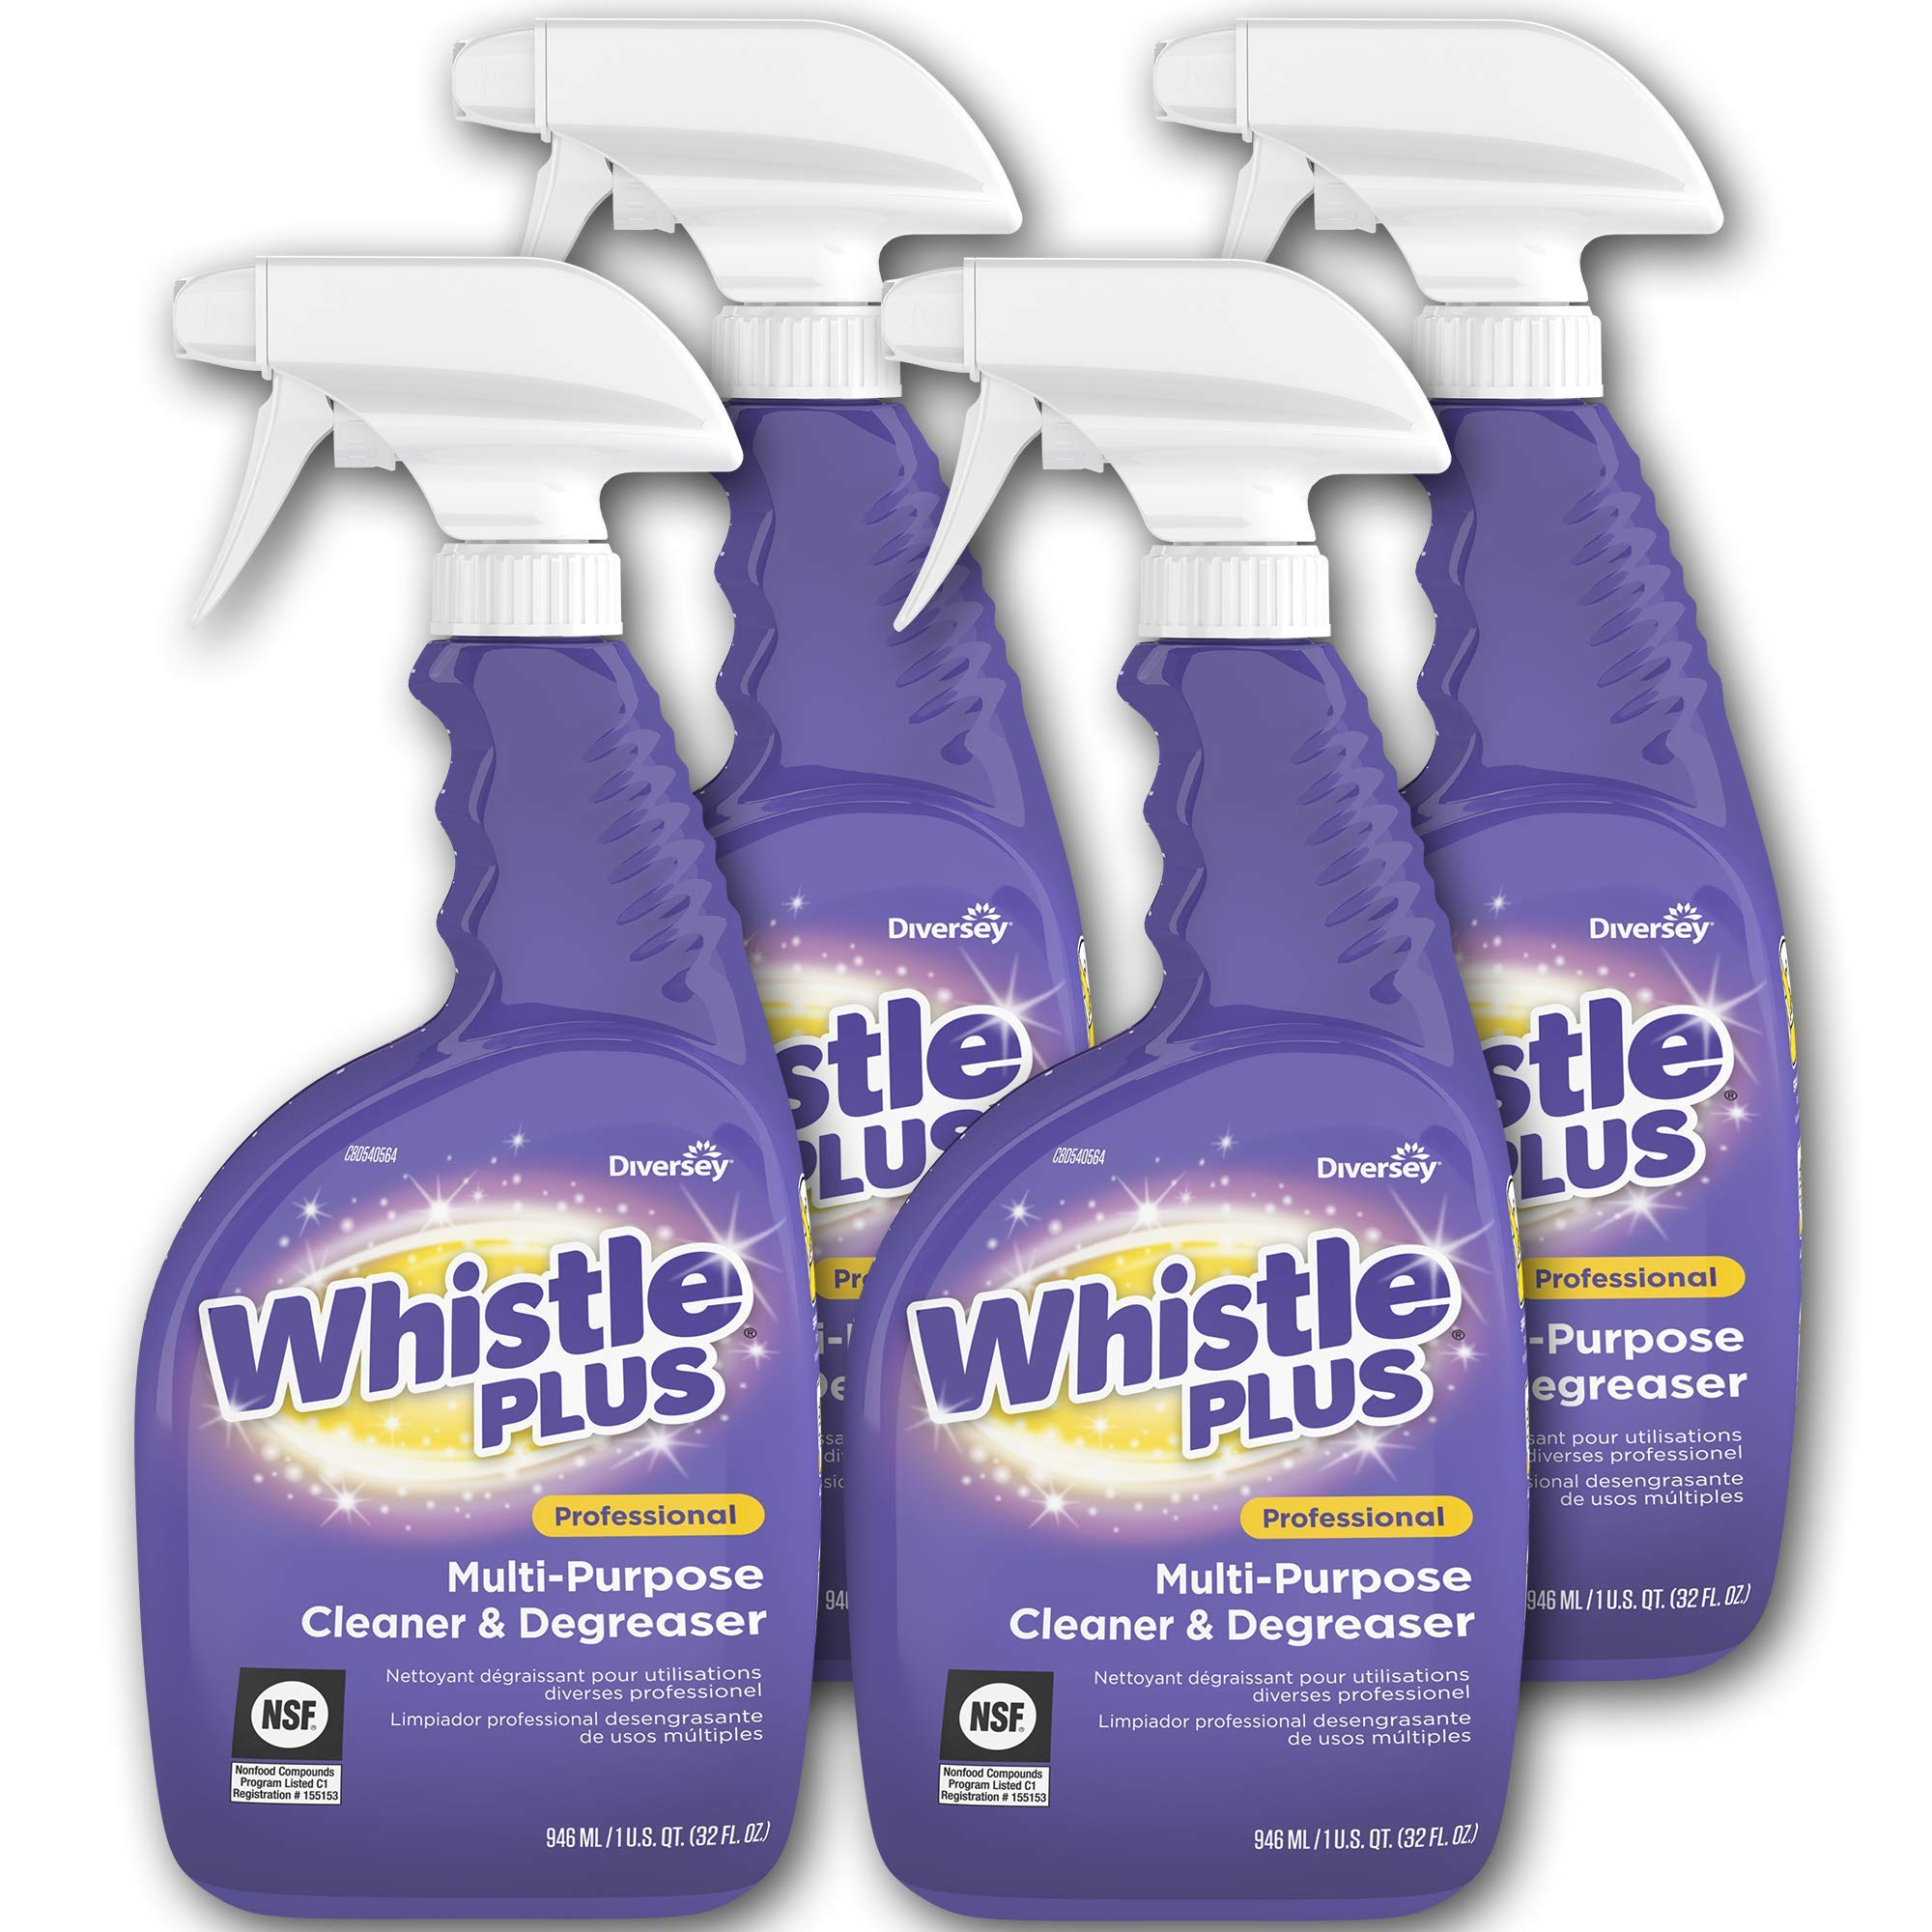 Diversey Whistle Plus Professional Multi-Purpose Cleaner and Degreaser, 32 oz. Capped Spray Bottle (4 Pack), Model:CBD540571